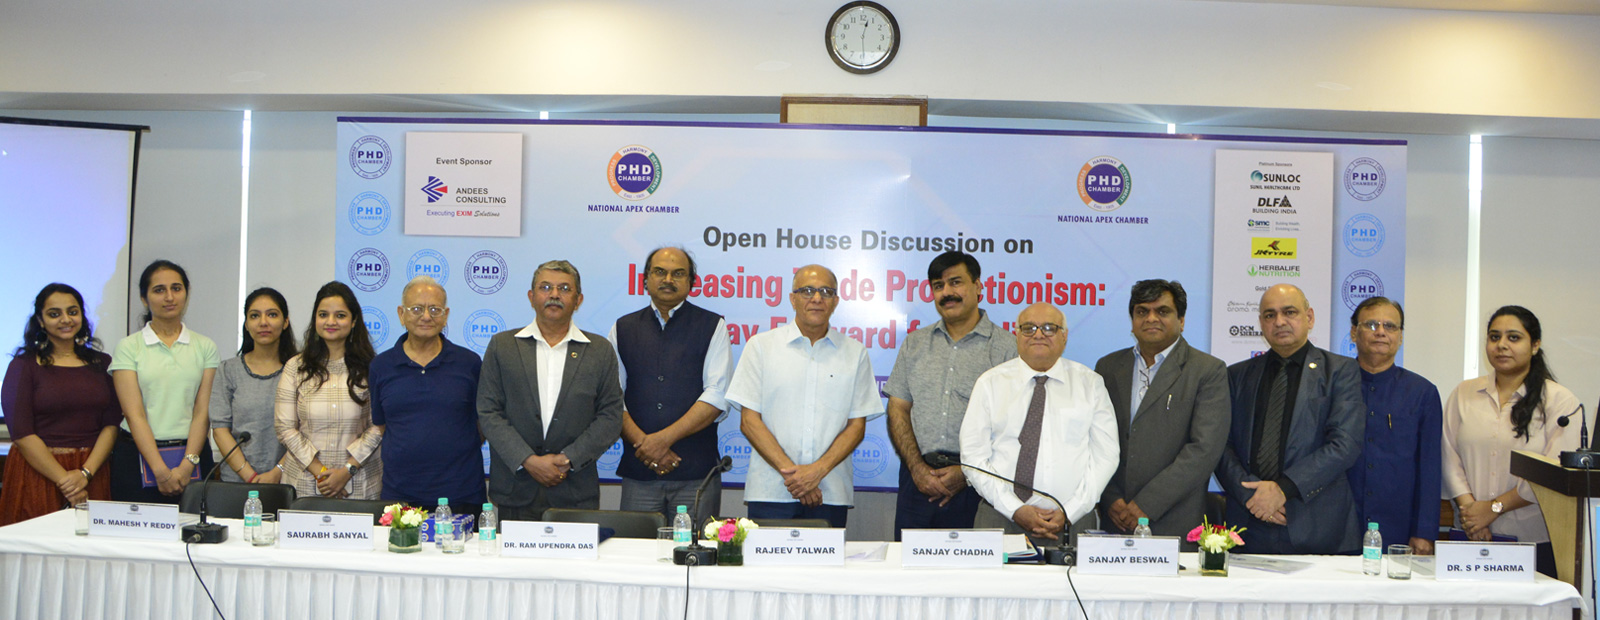 Open House Discussion on Increasing Trade Protectionism-Way Forward for India